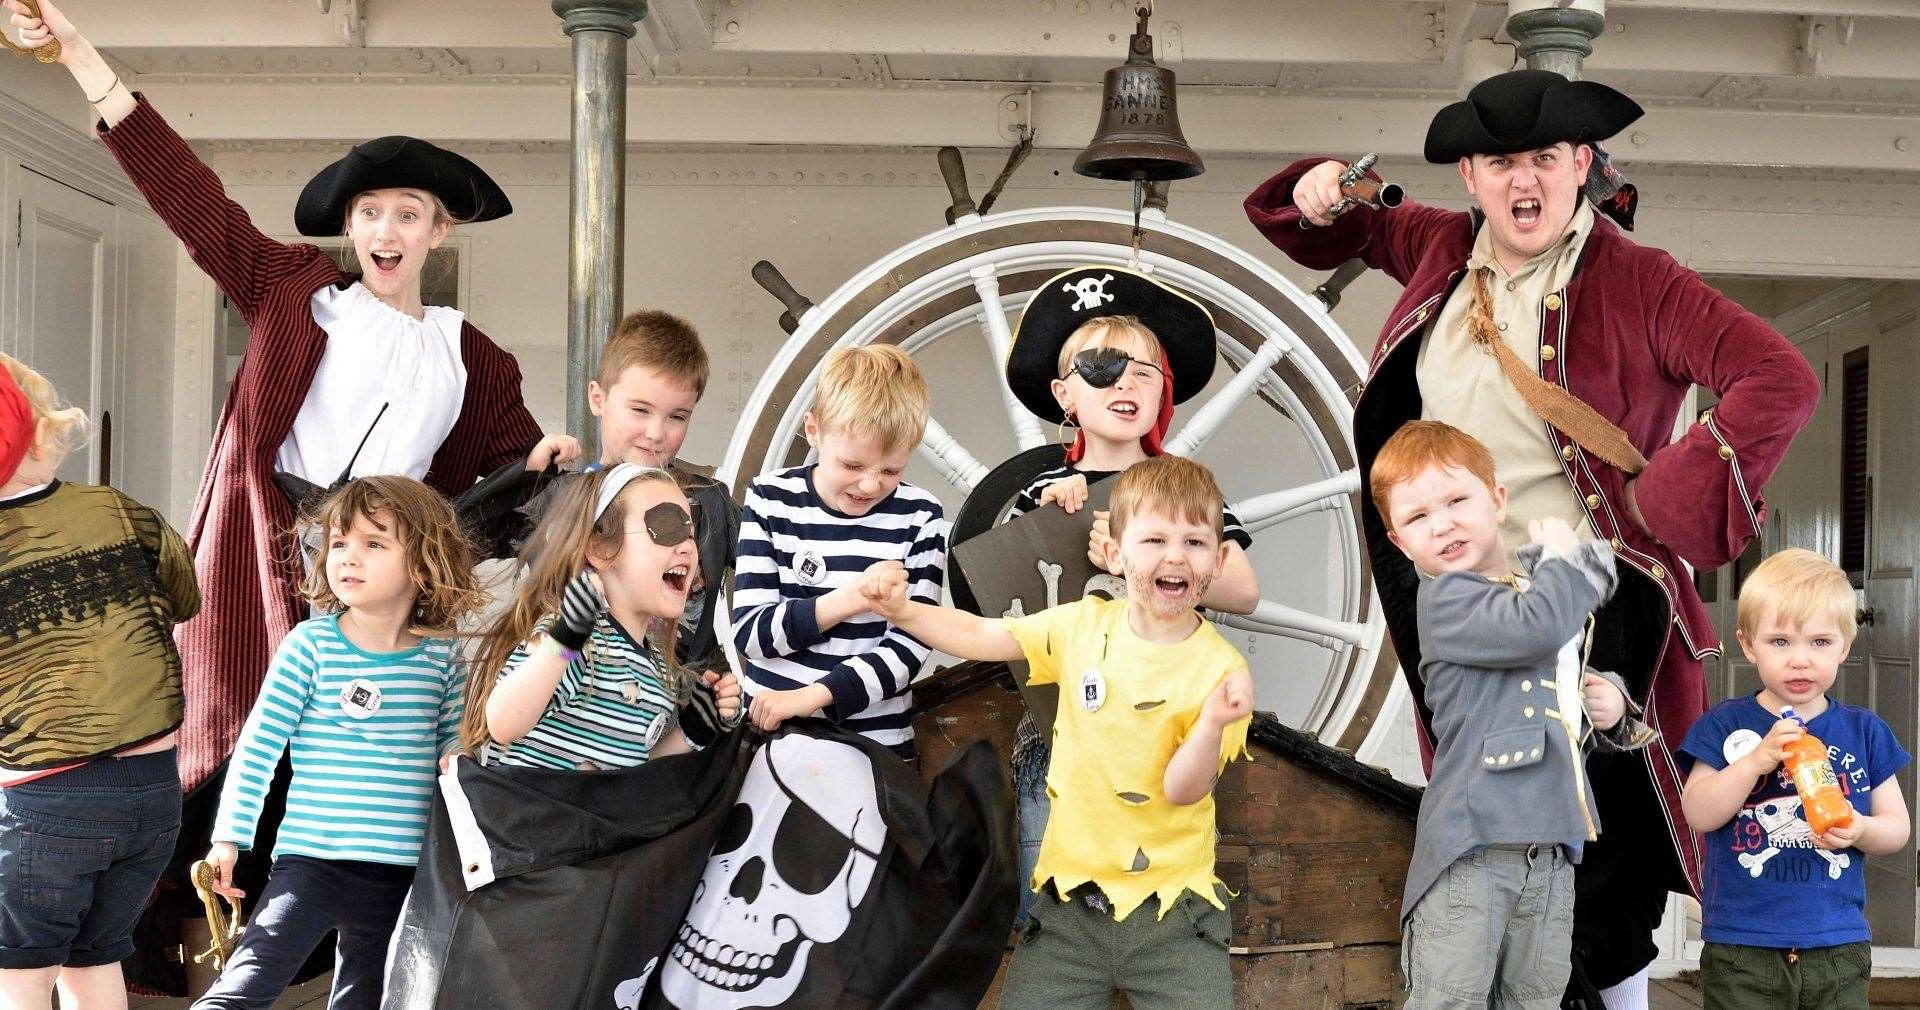 Enjoy a pirate-themed week at The Historic Dockyard